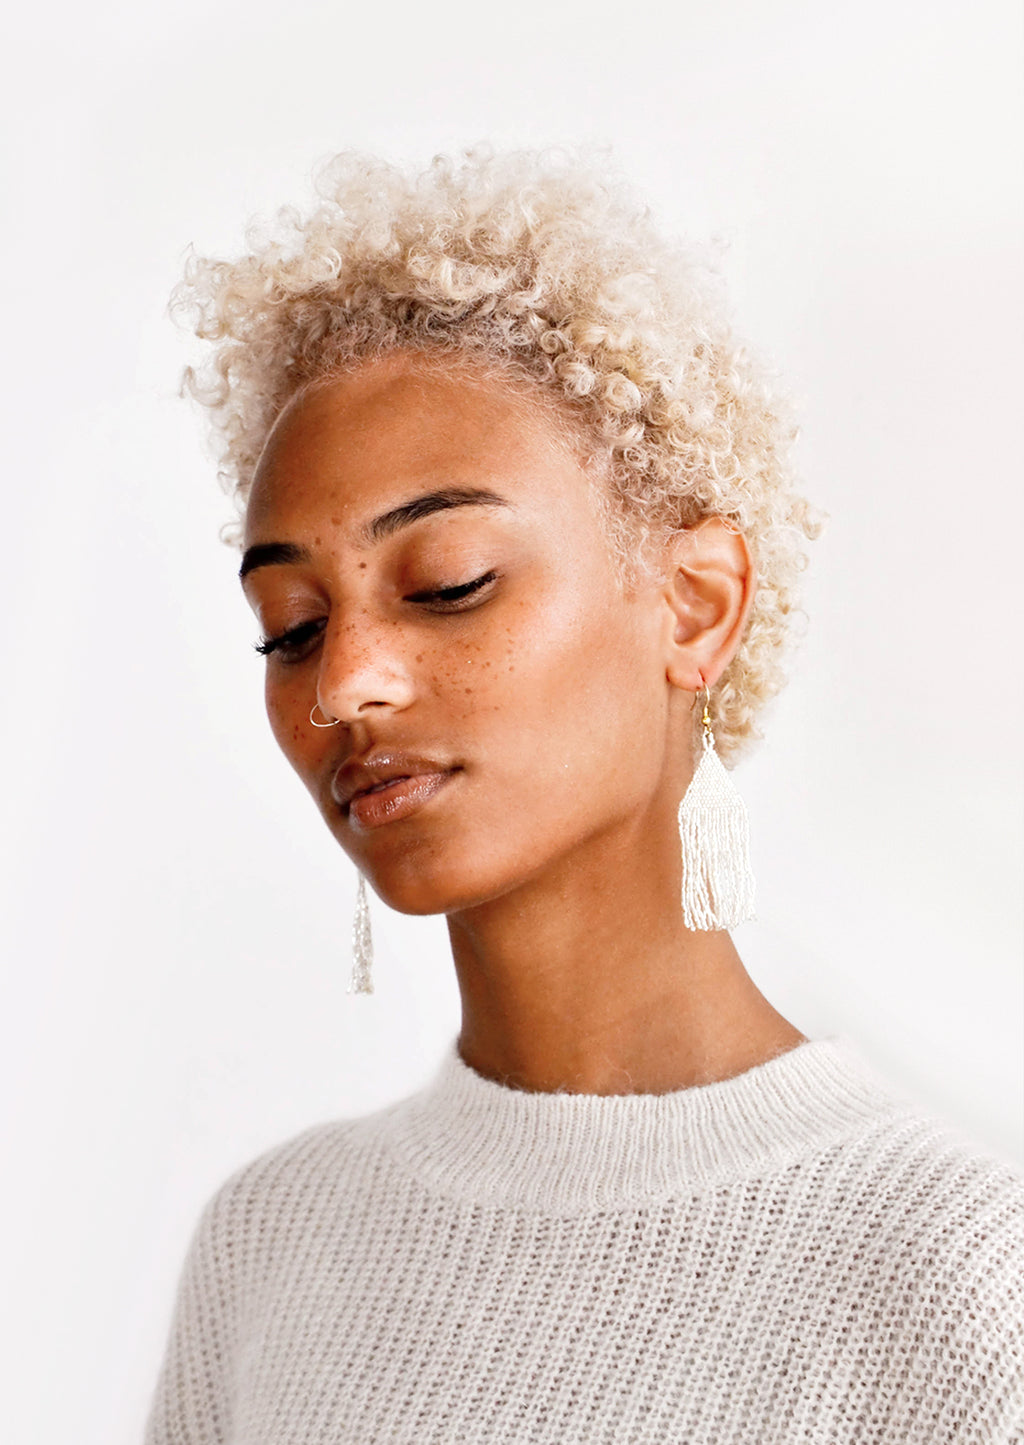 2: Model wears silver fringe beaded earrings and sweater.